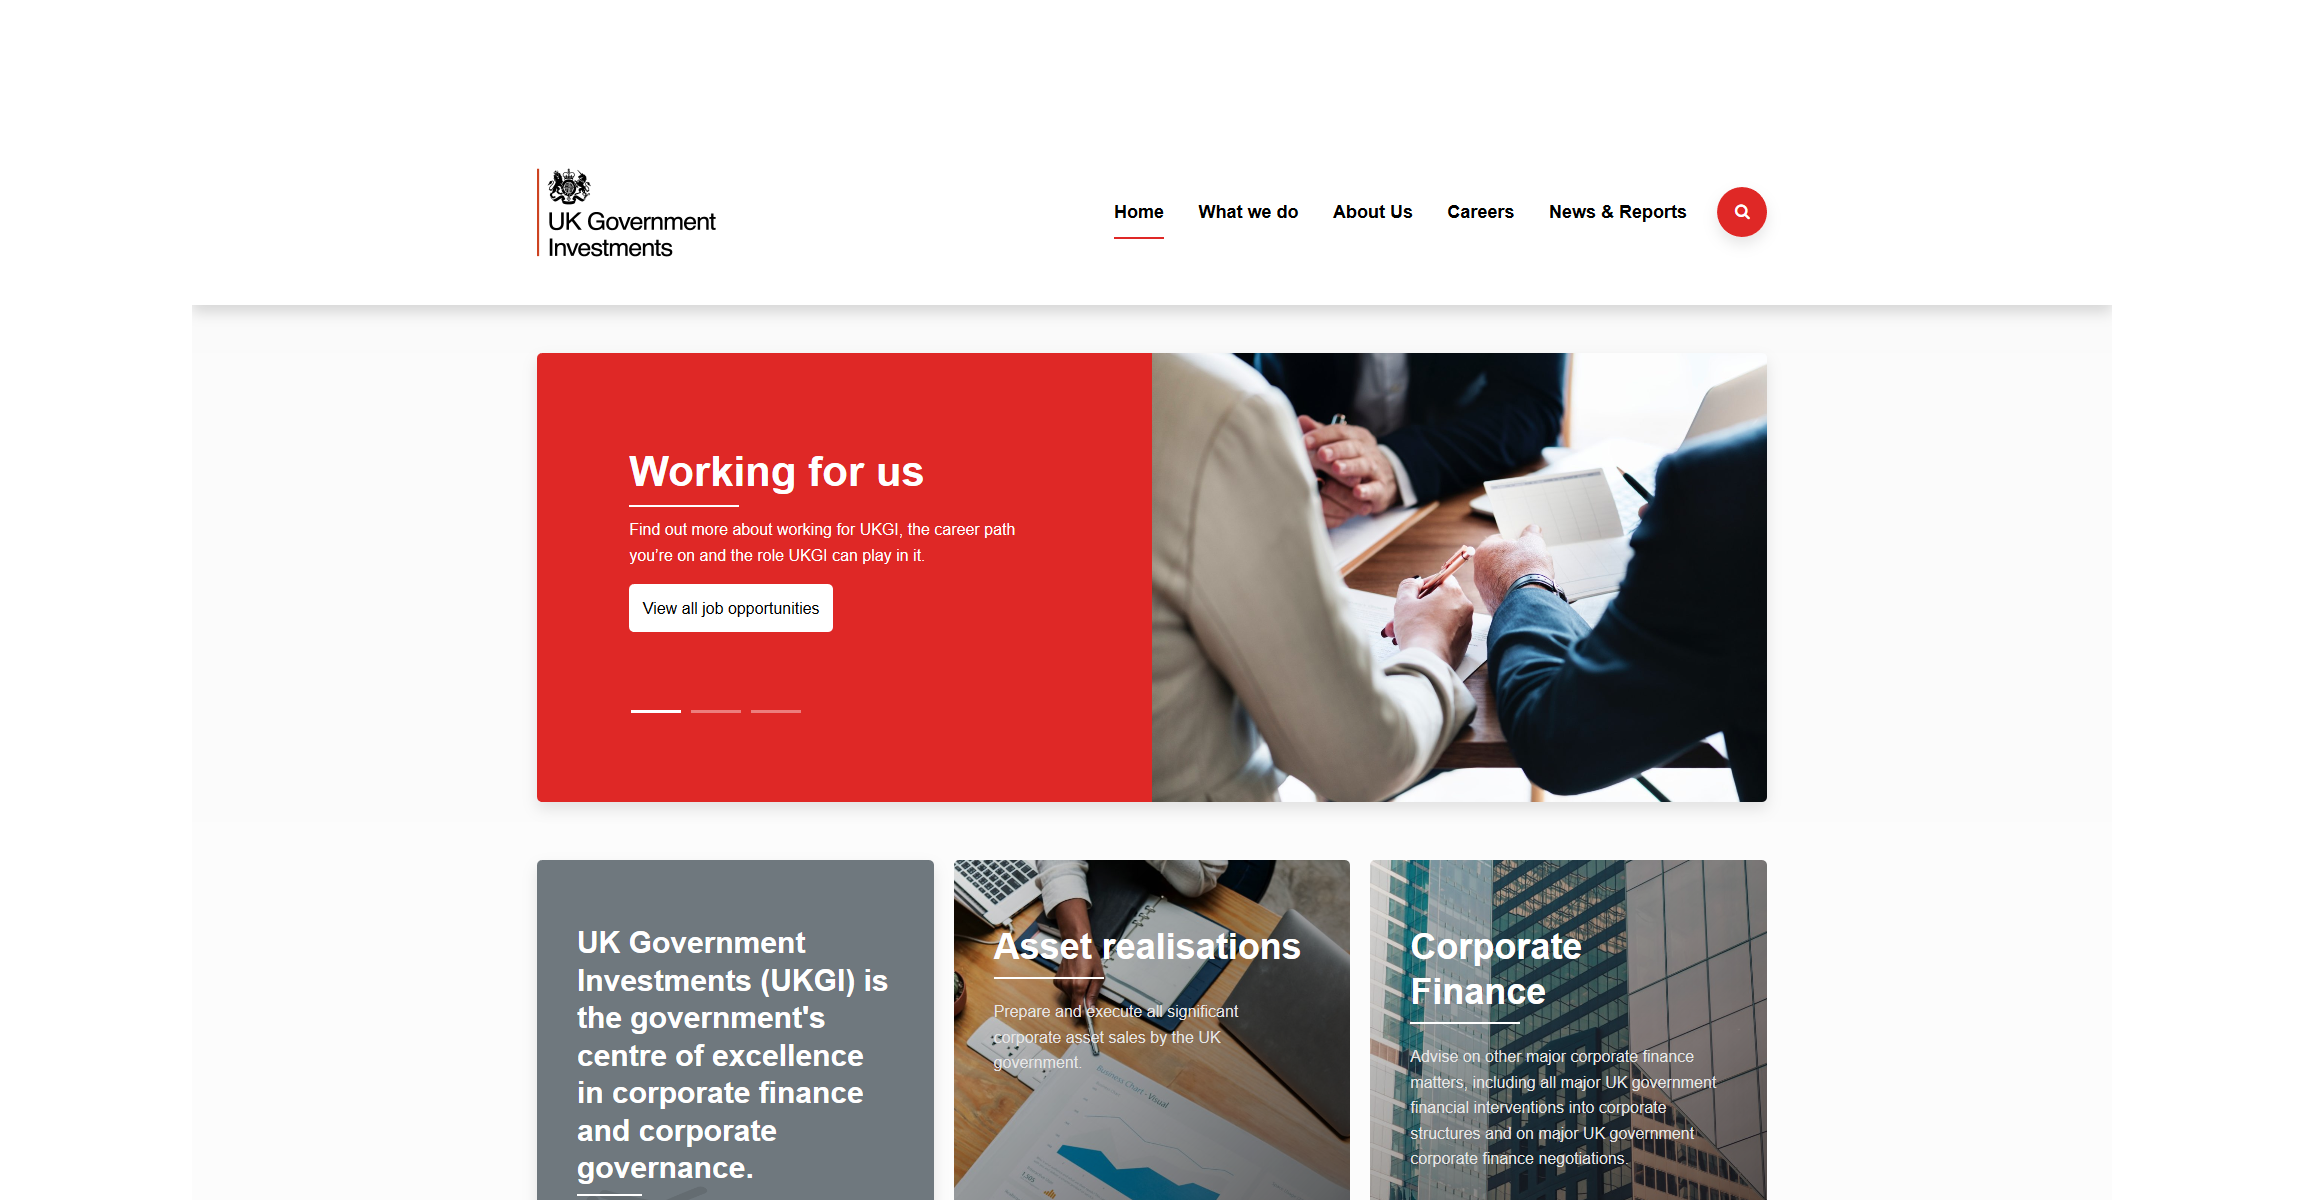 UK Government Investments (UKGI) website homepage screenshot